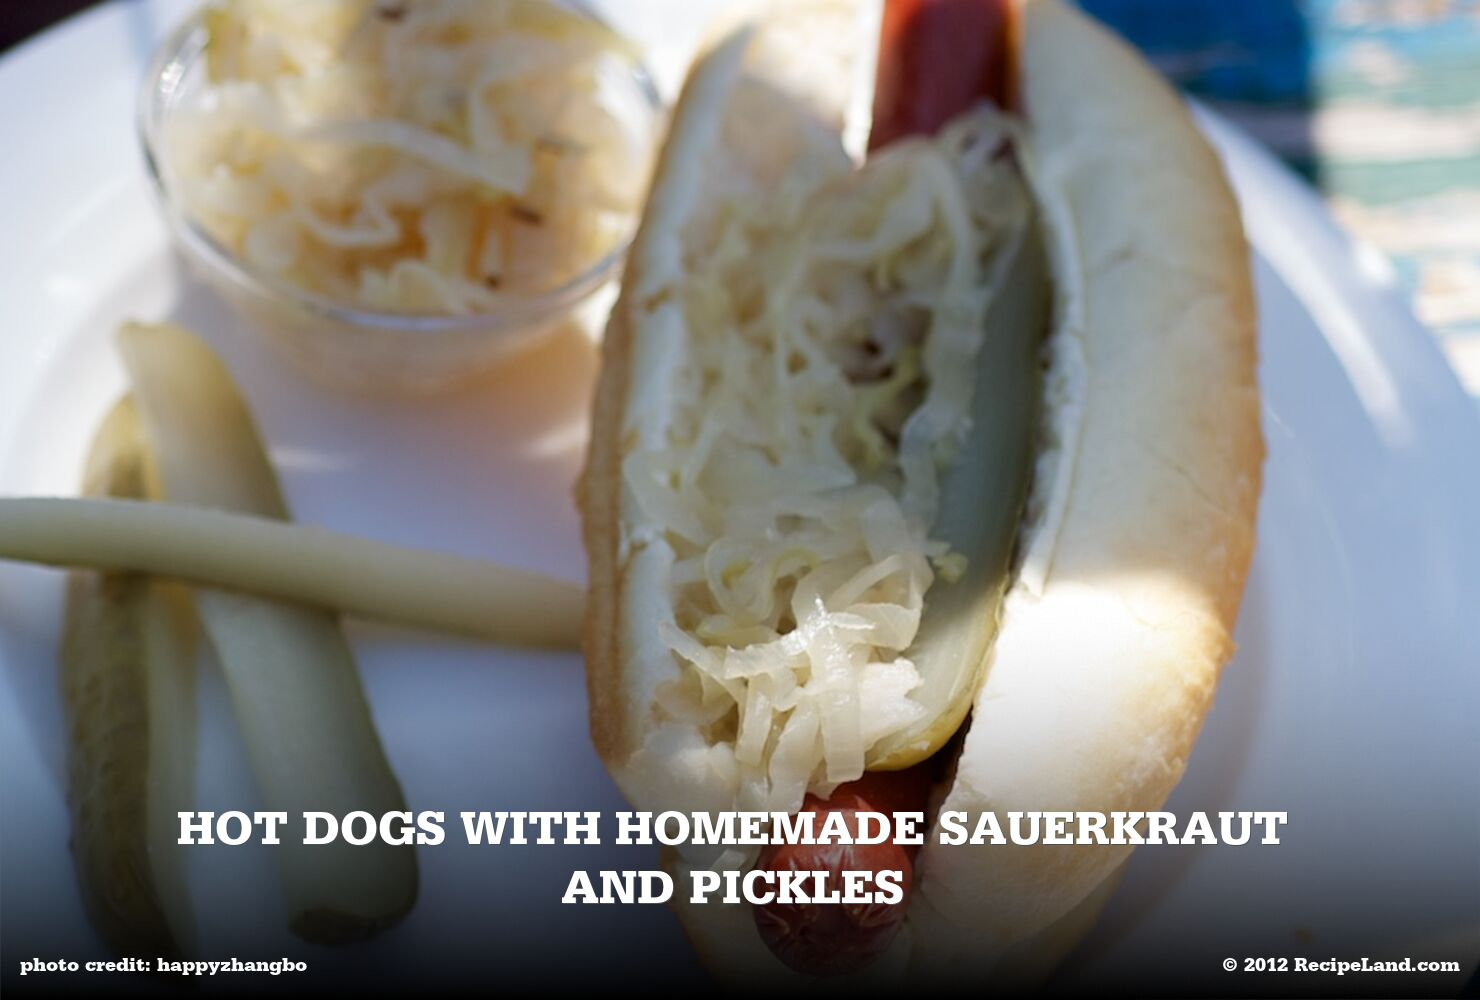 Hot Dogs with Homemade Sauerkraut and Pickles